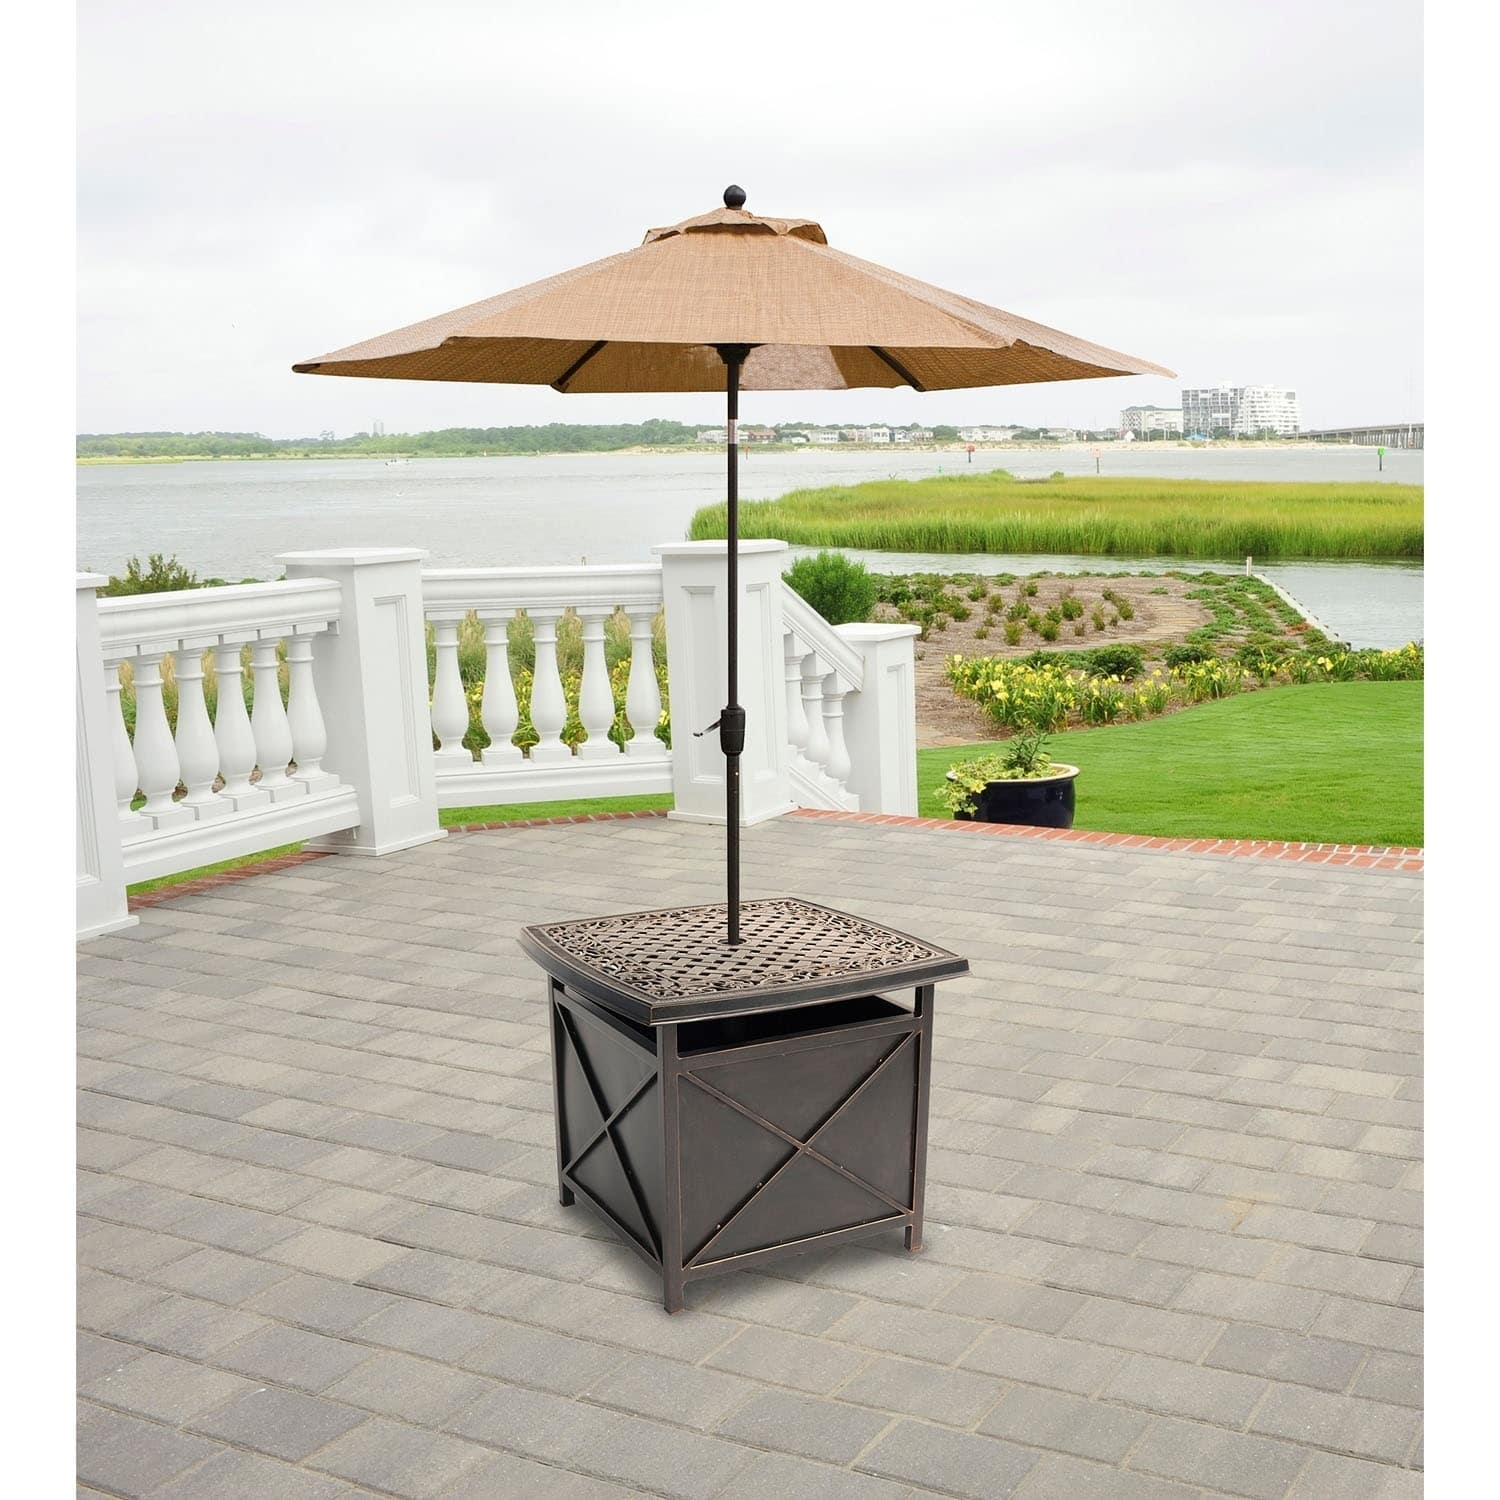 hanover outdoor traditions tradumbtbl cast top side table and umbrella stand sideboard currey company lighting website floating ashley couches tall metal end with stools height